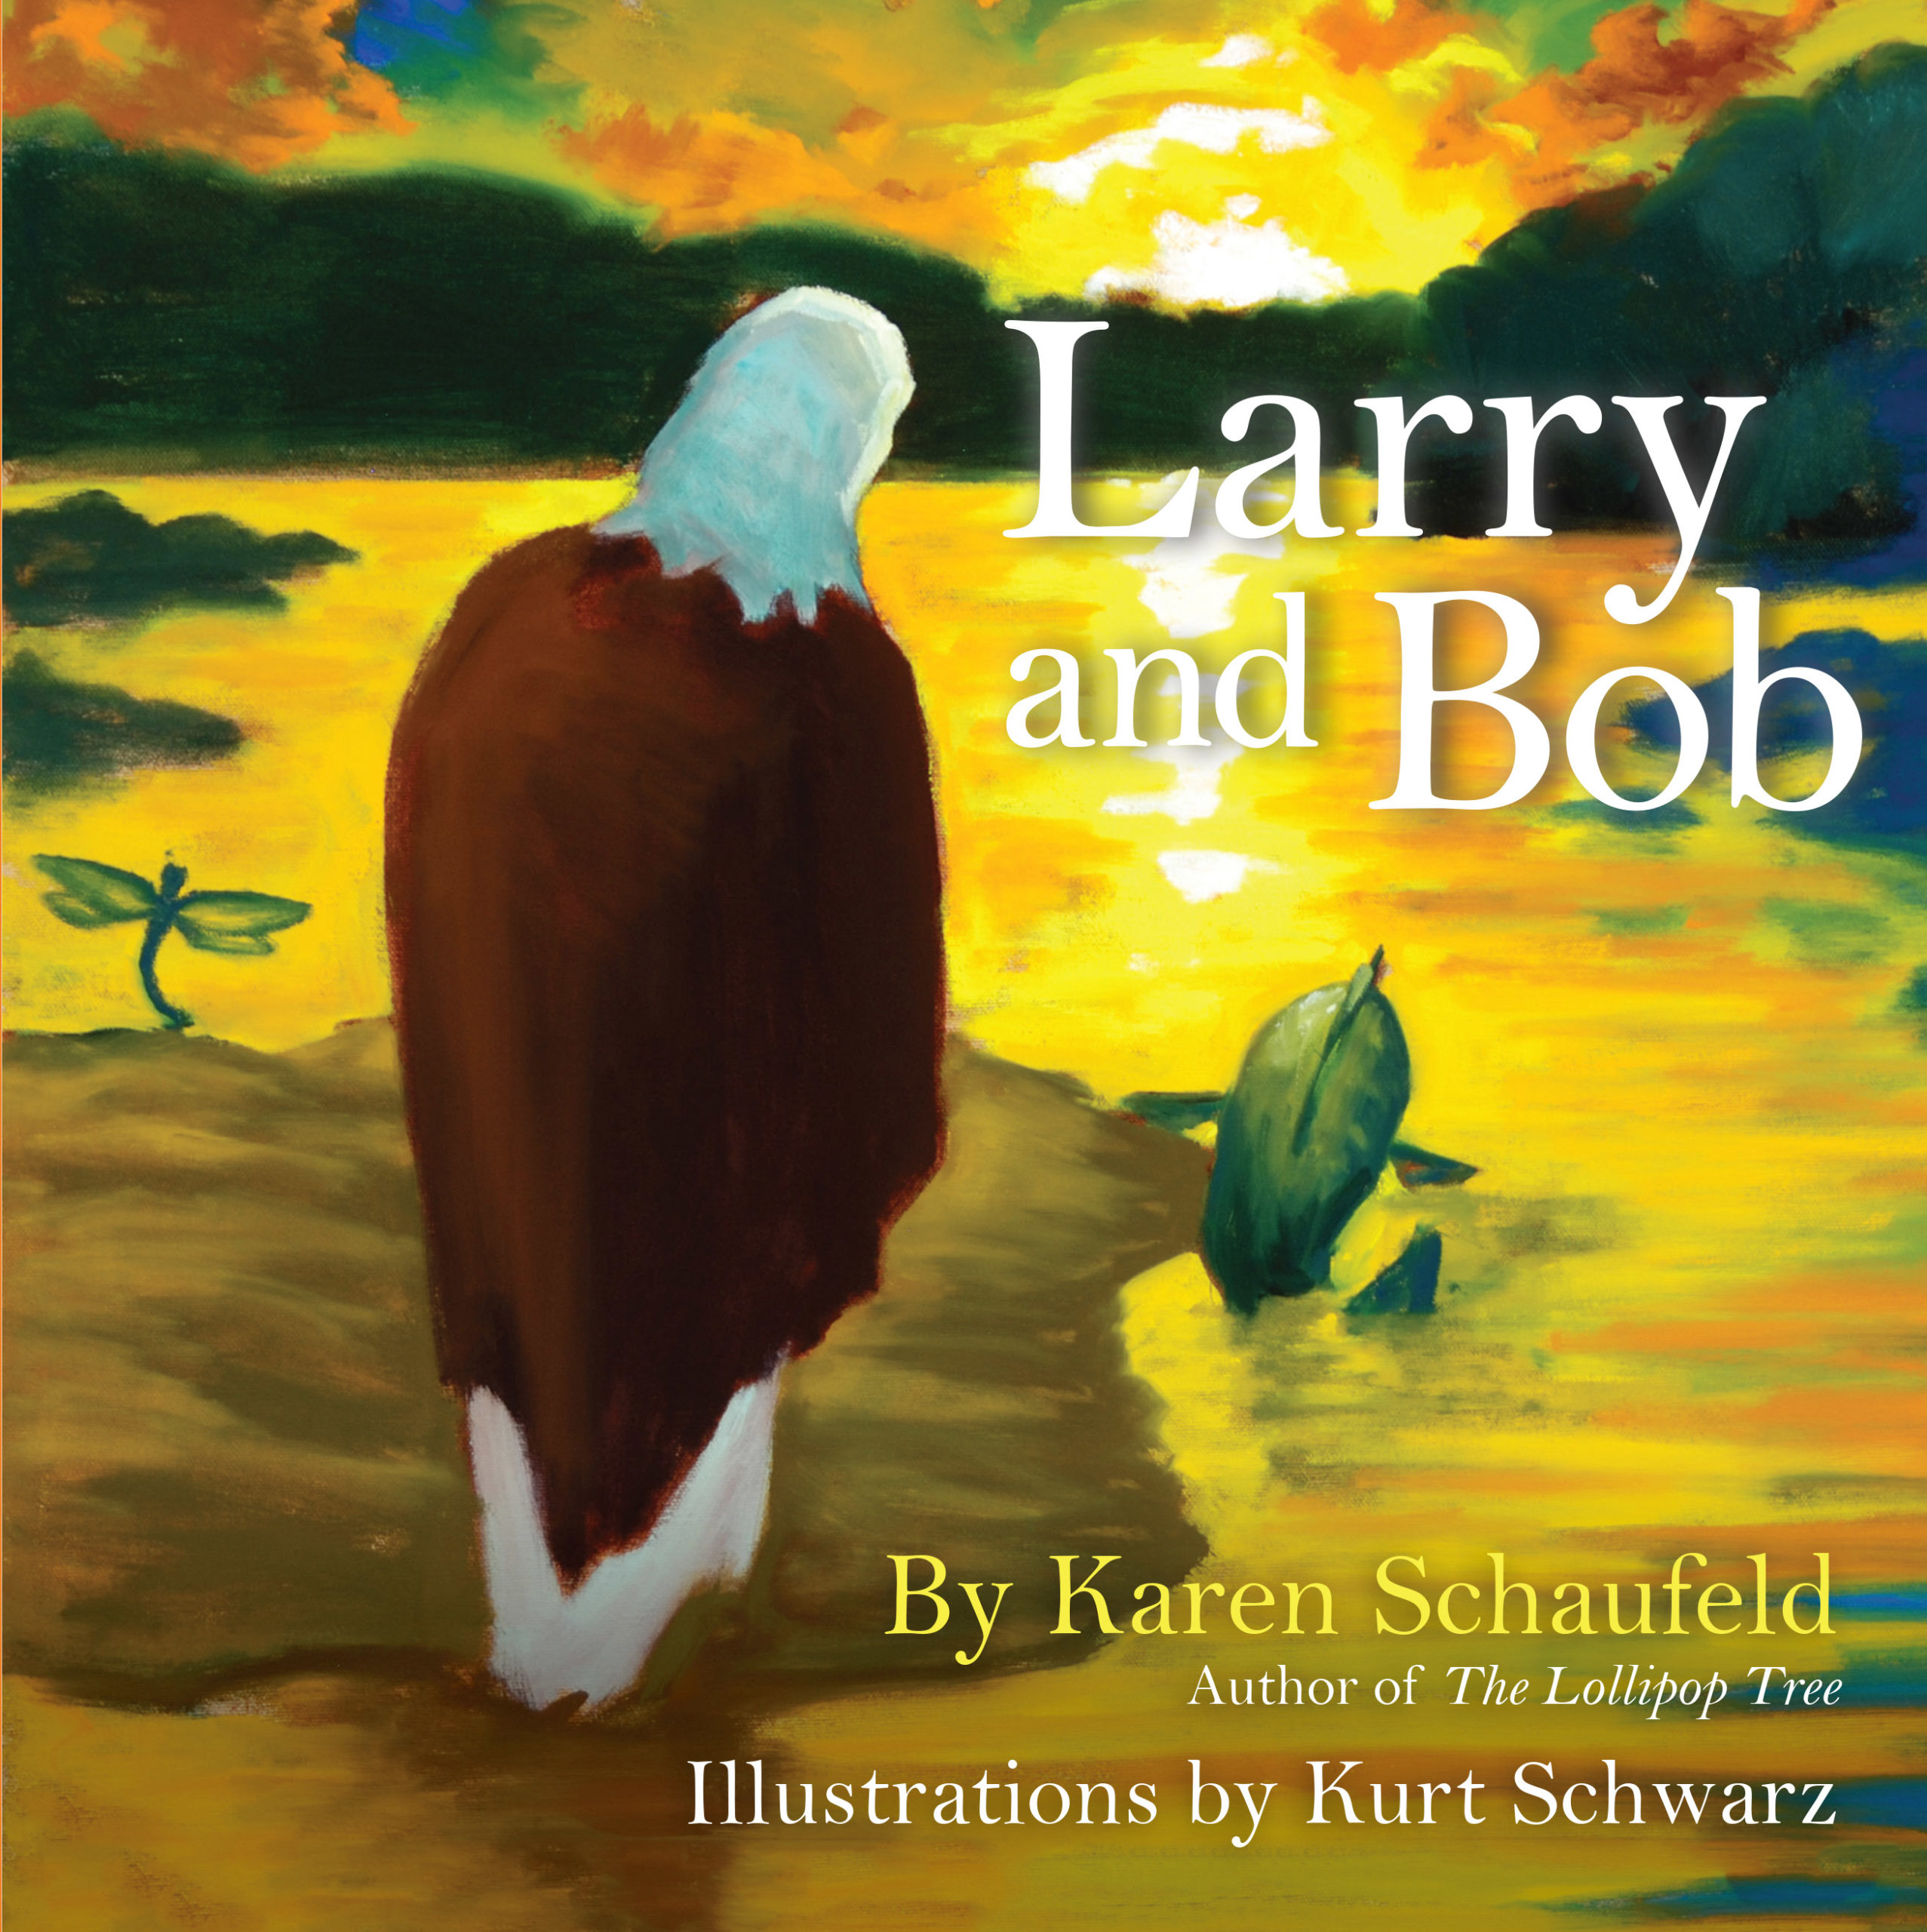 """Celebrate Fatherhood and the Bonds We Share With """"Larry and Bob"""" by Karen Schaufeld"""